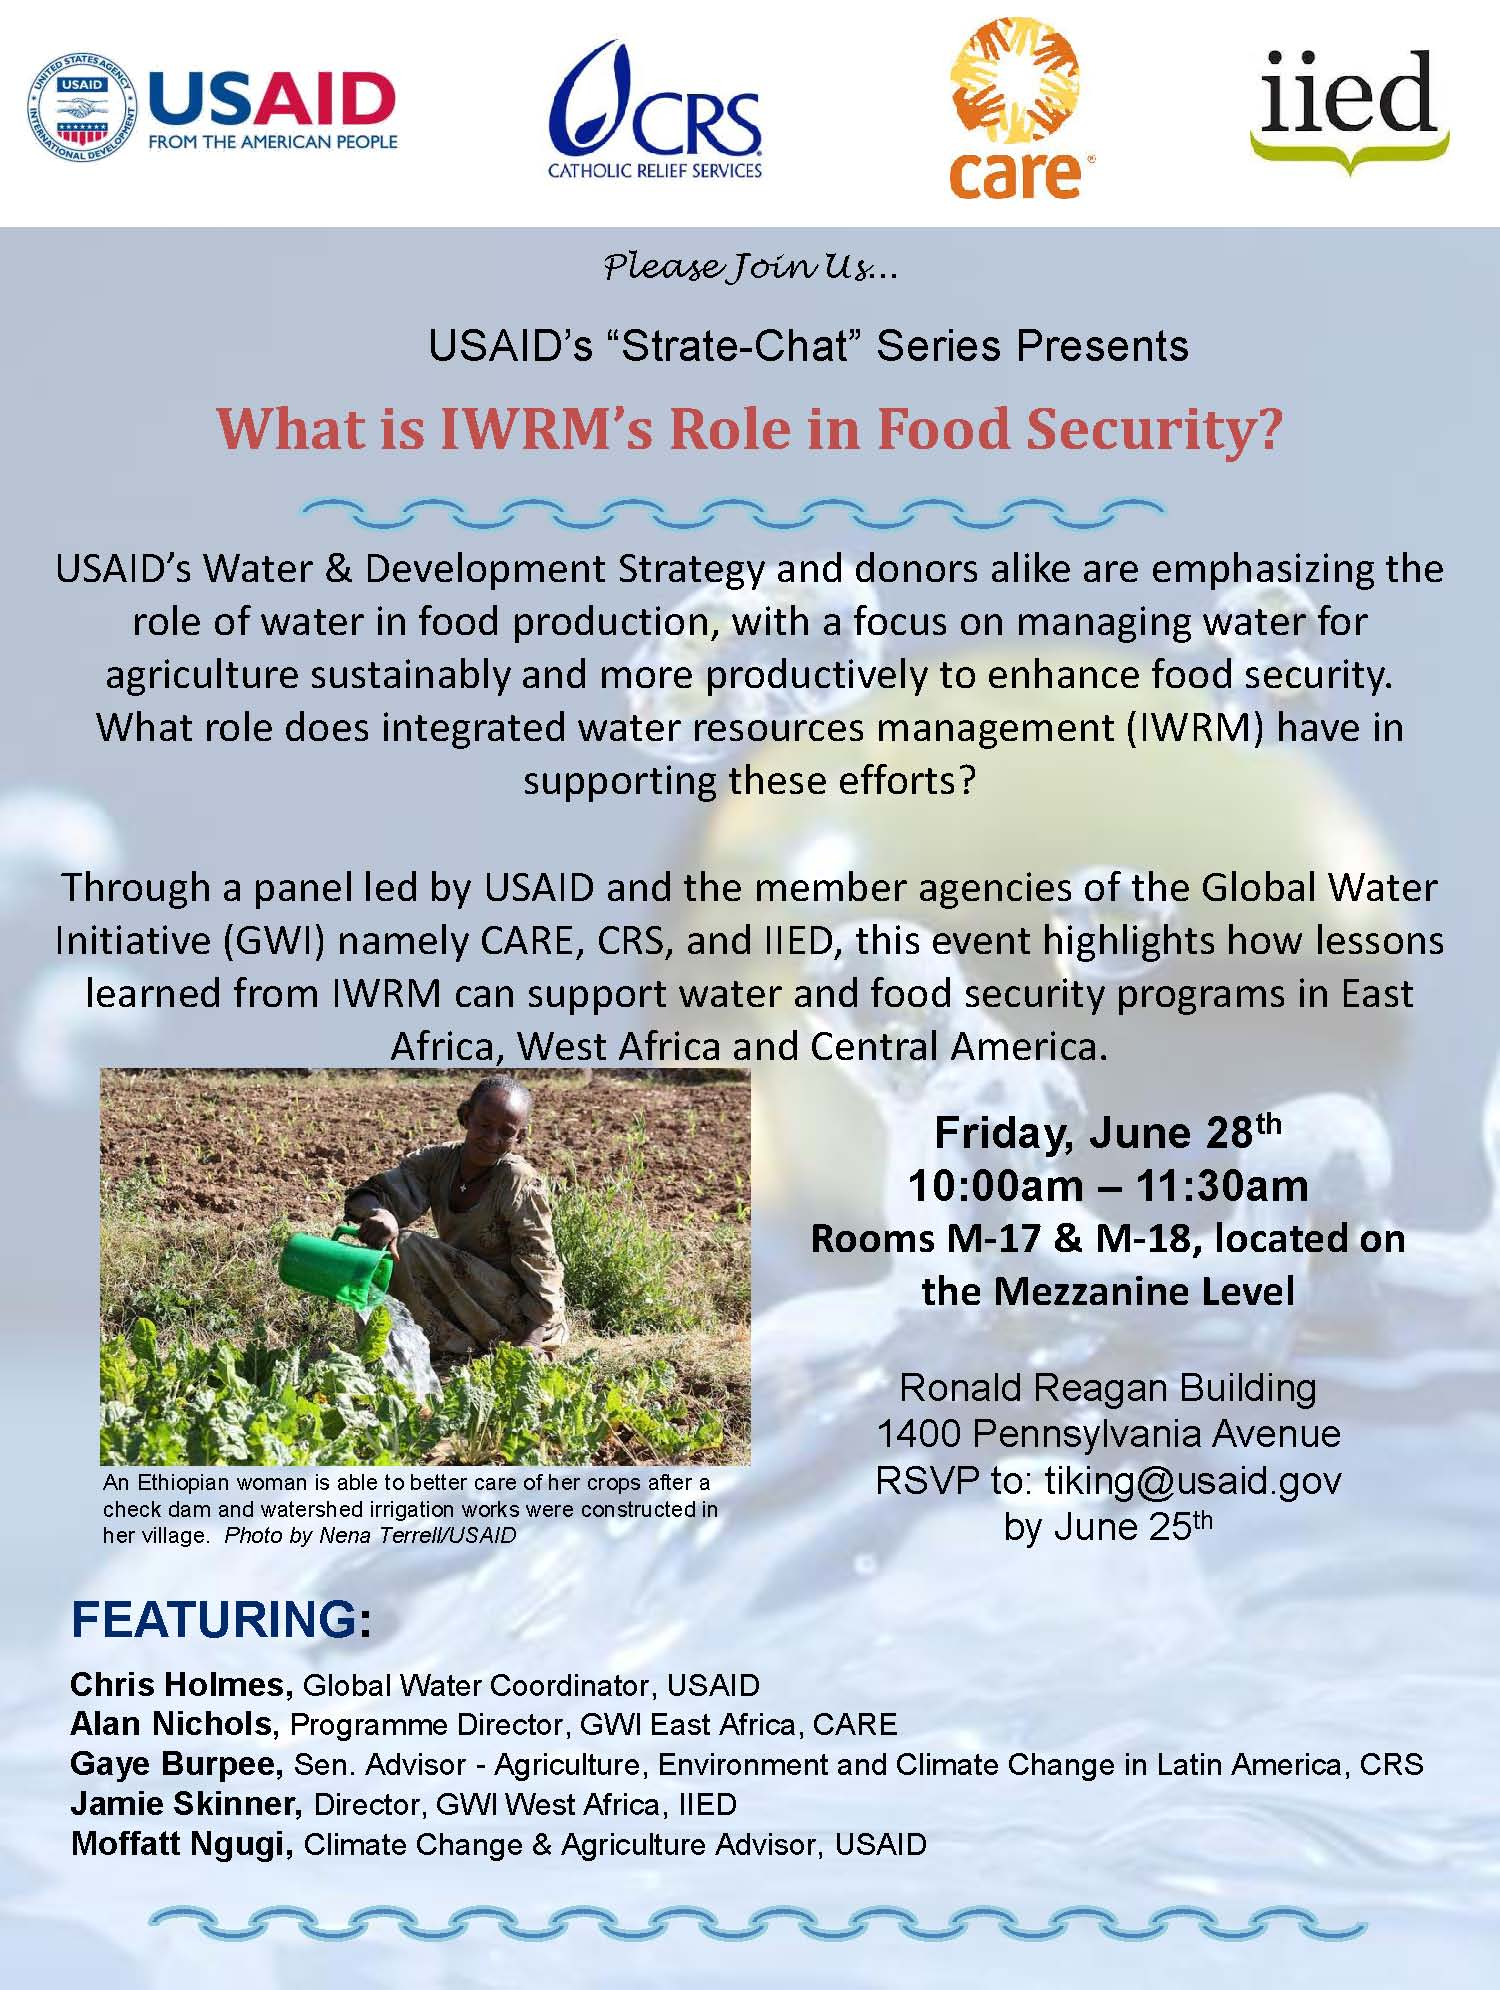 Invitation to the What is IWRM's Role in Food Security learning event.